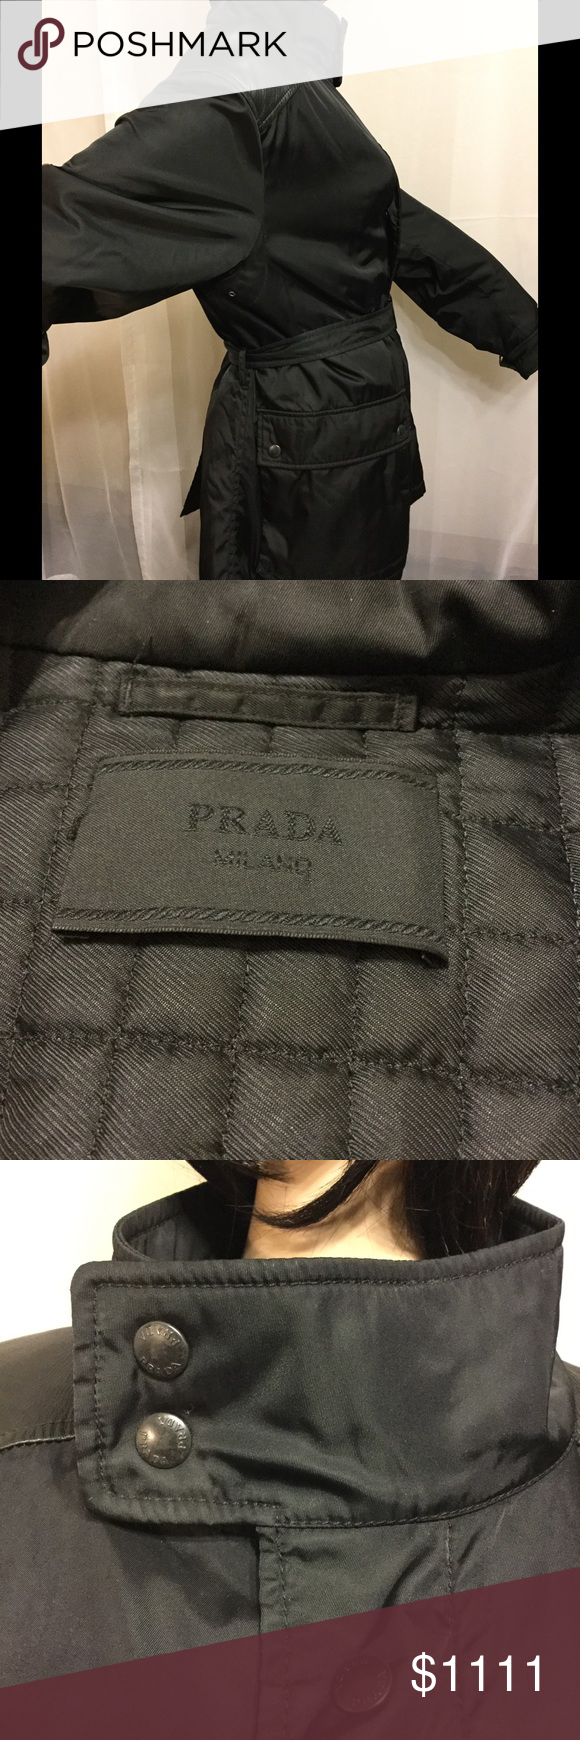 Prada Milano Belted Jacket Coat More Pics 90 S Belted Jacket Clothes Design Fashion Trends [ 1740 x 580 Pixel ]